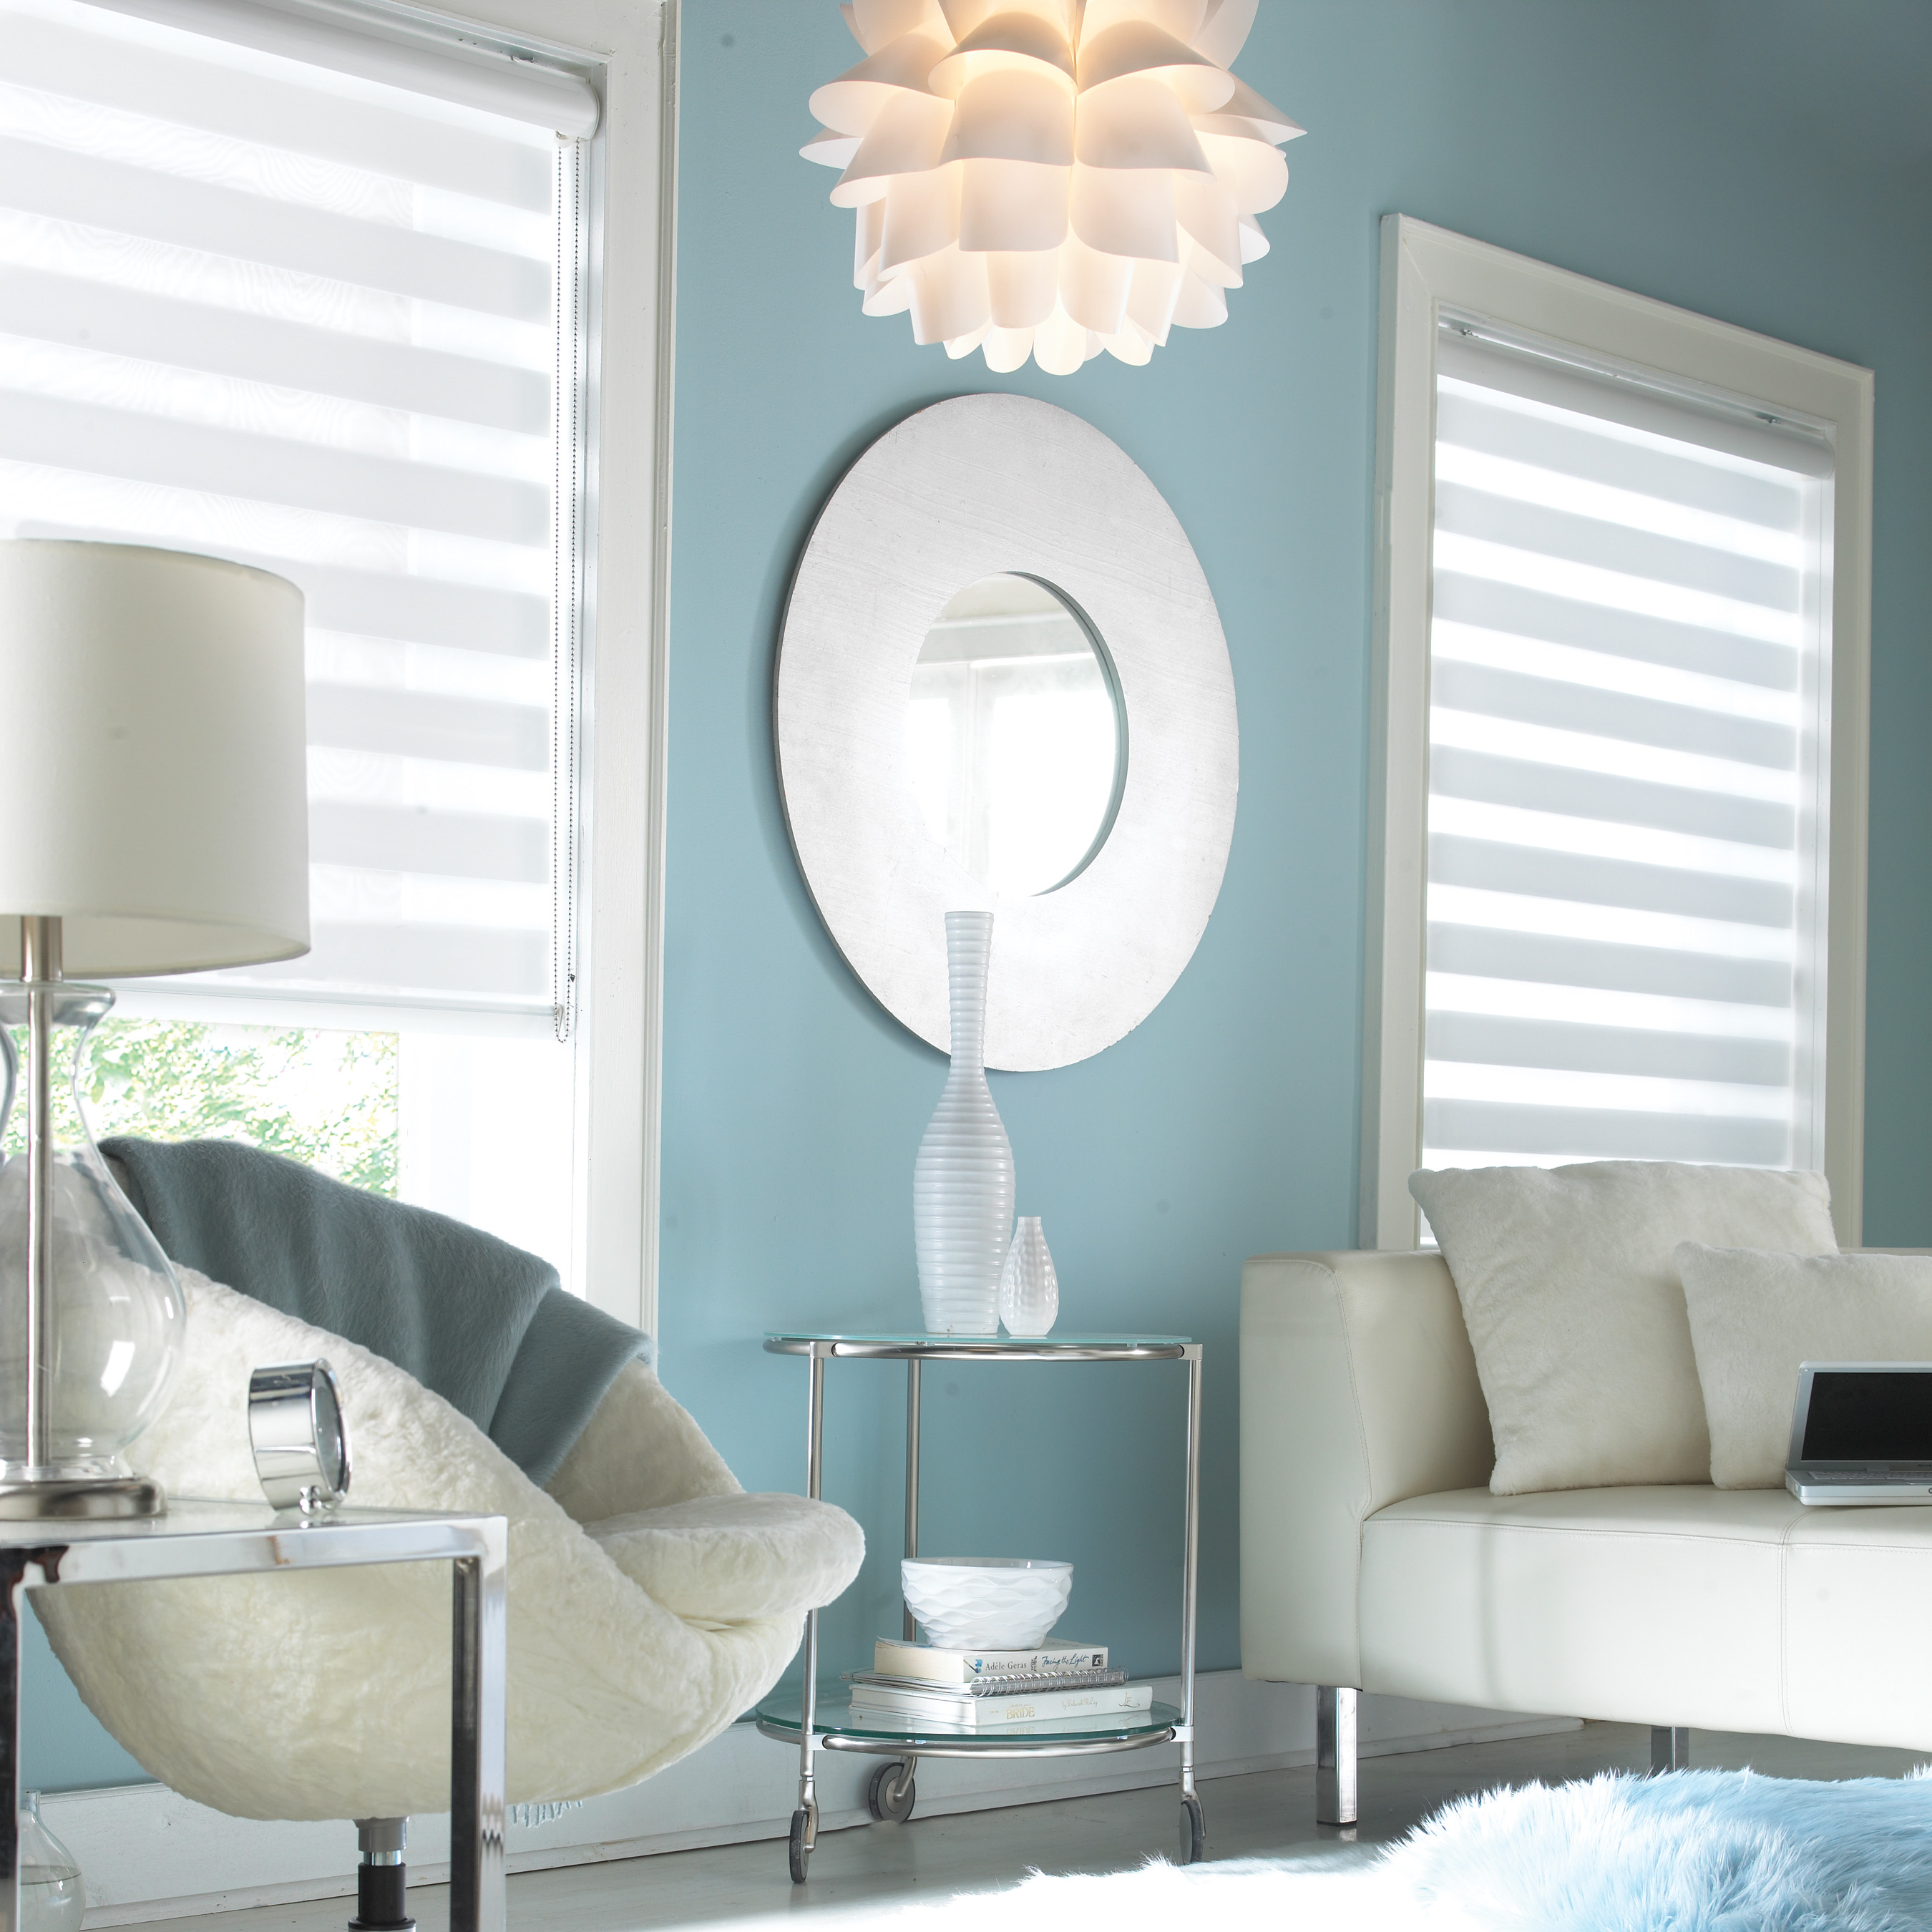 blinds of tar vertical inspirational target curtains shades fresh roman amp venetian lowes